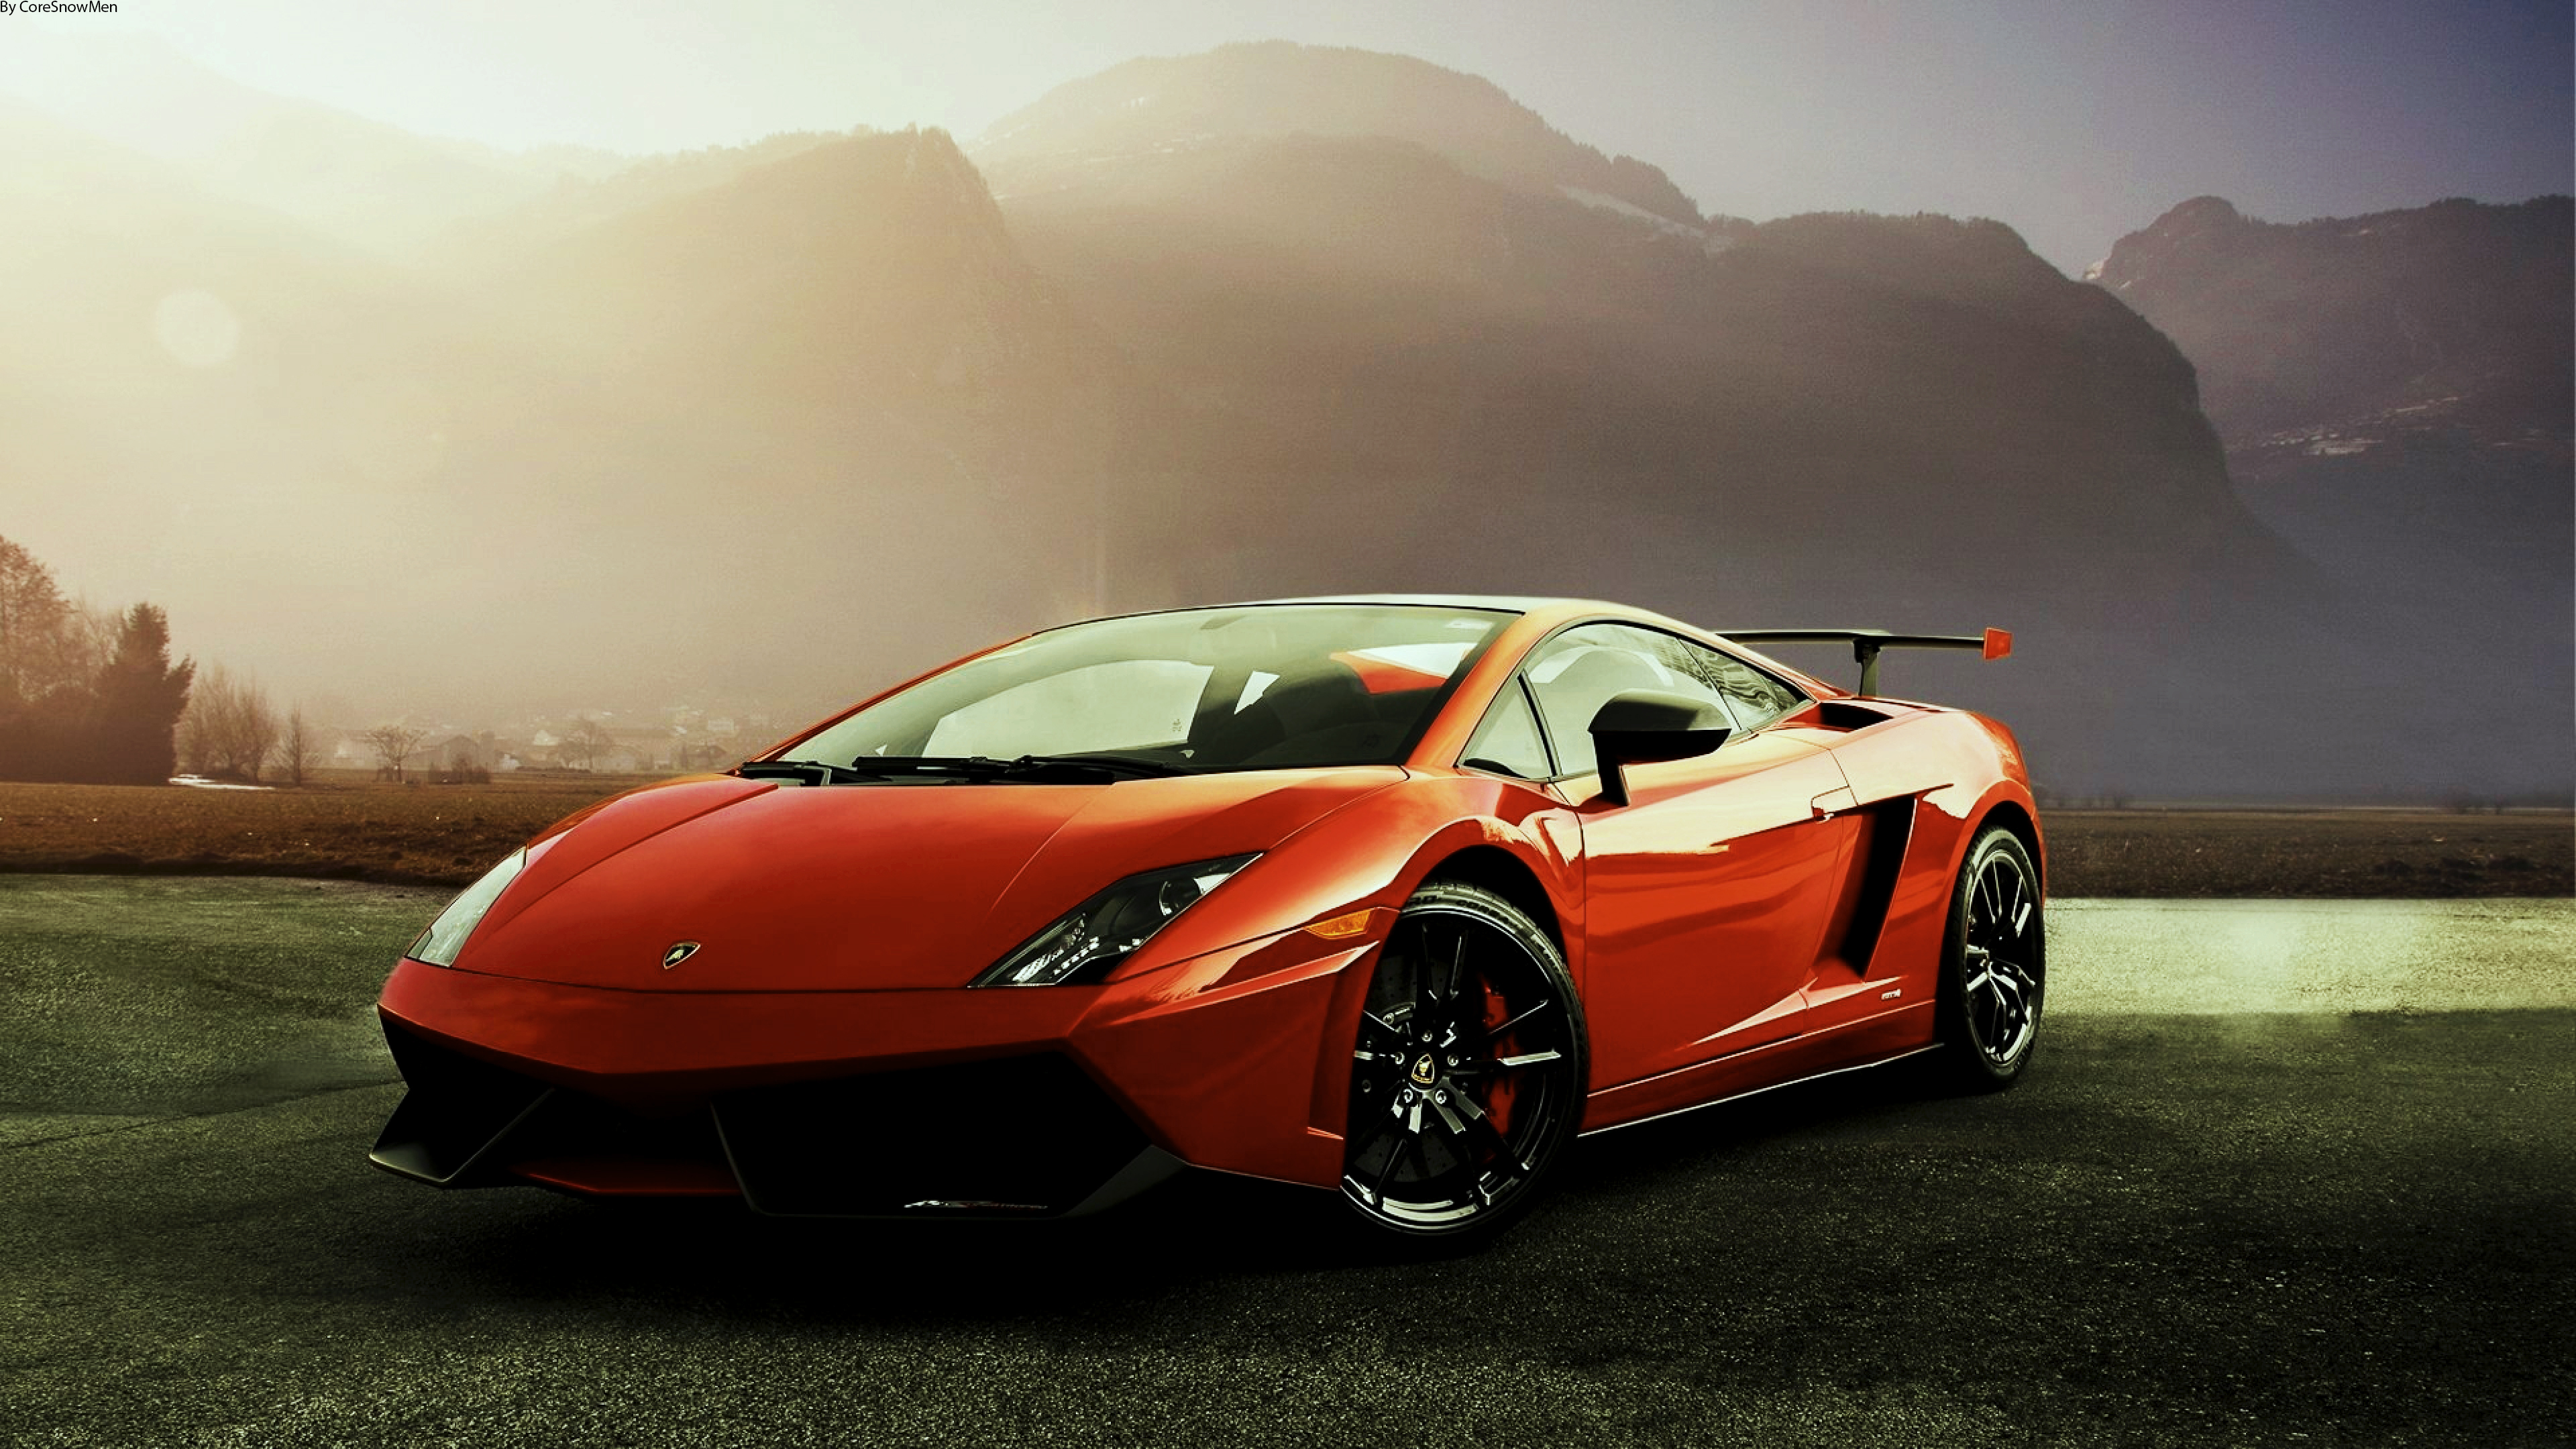 Lamborghini Gallardo Hd Wallpapers Background Images Wallpaper Abyss